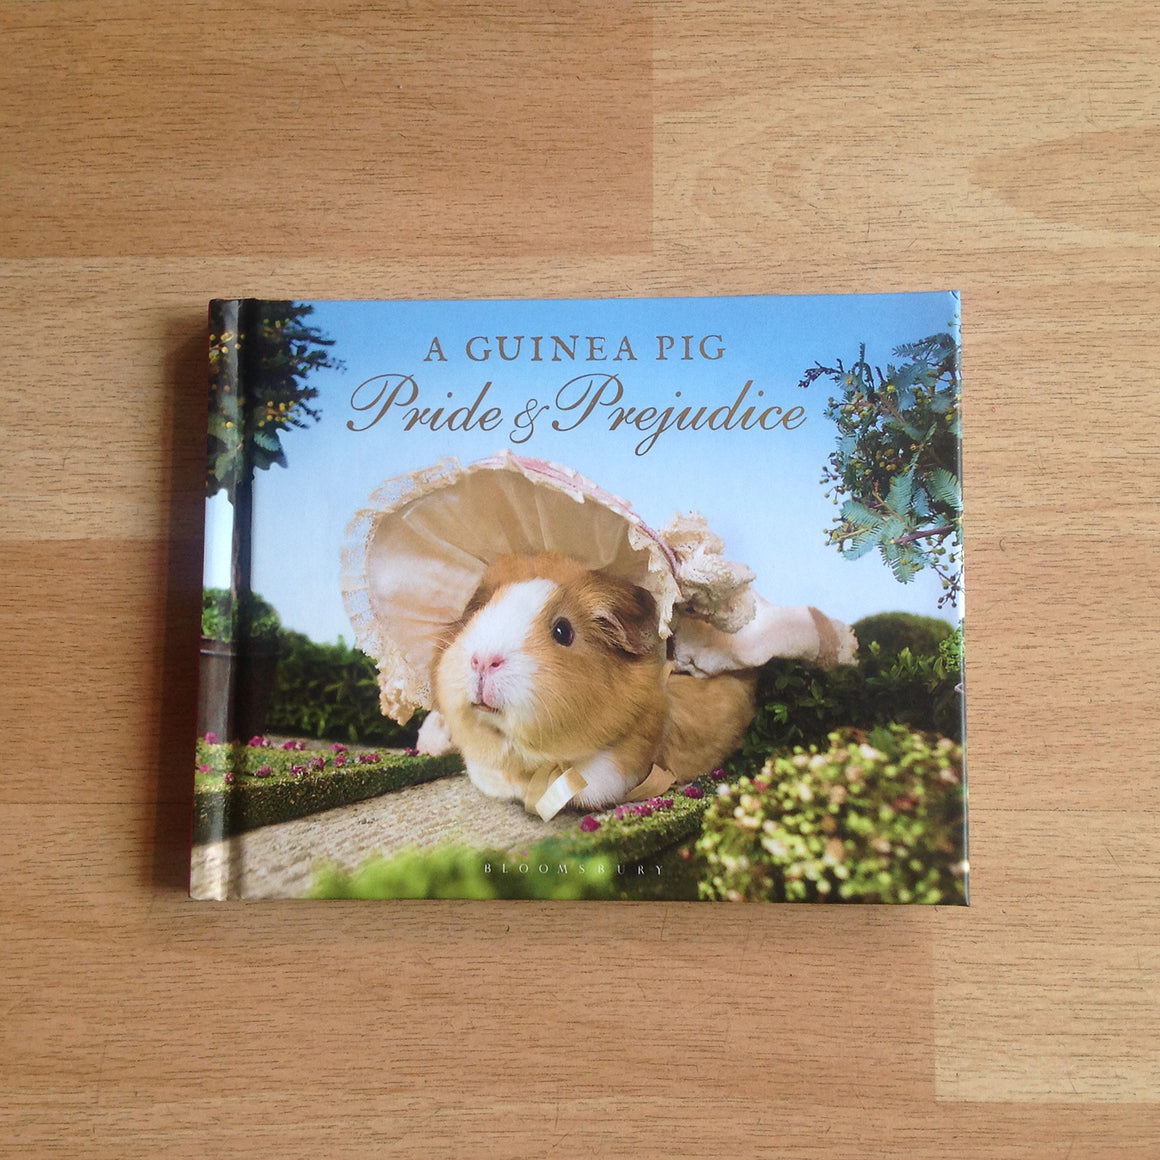 Guinea Pig gifts, the classic Jane Austen story re-told with Guinea pigs!